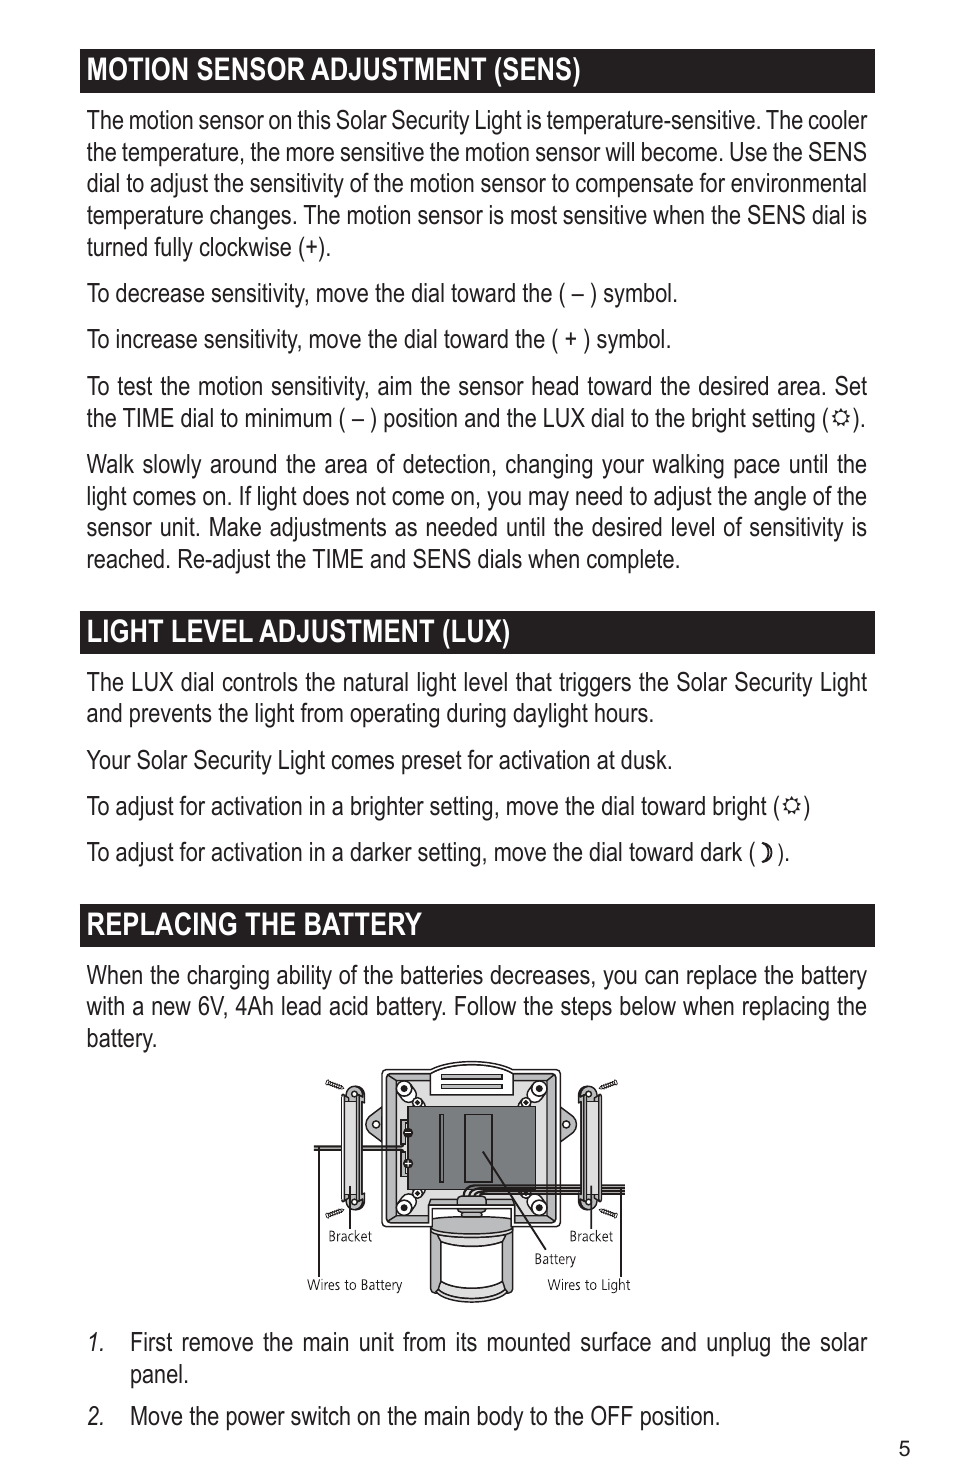 Motion Sensor Adjustment Sens Light Level Adjustment Lux Replacing The Battery Maxsa Innovations Solar Powered 50 Led Motion Activated Outdoor Security Floodlight User Manual Page 5 8